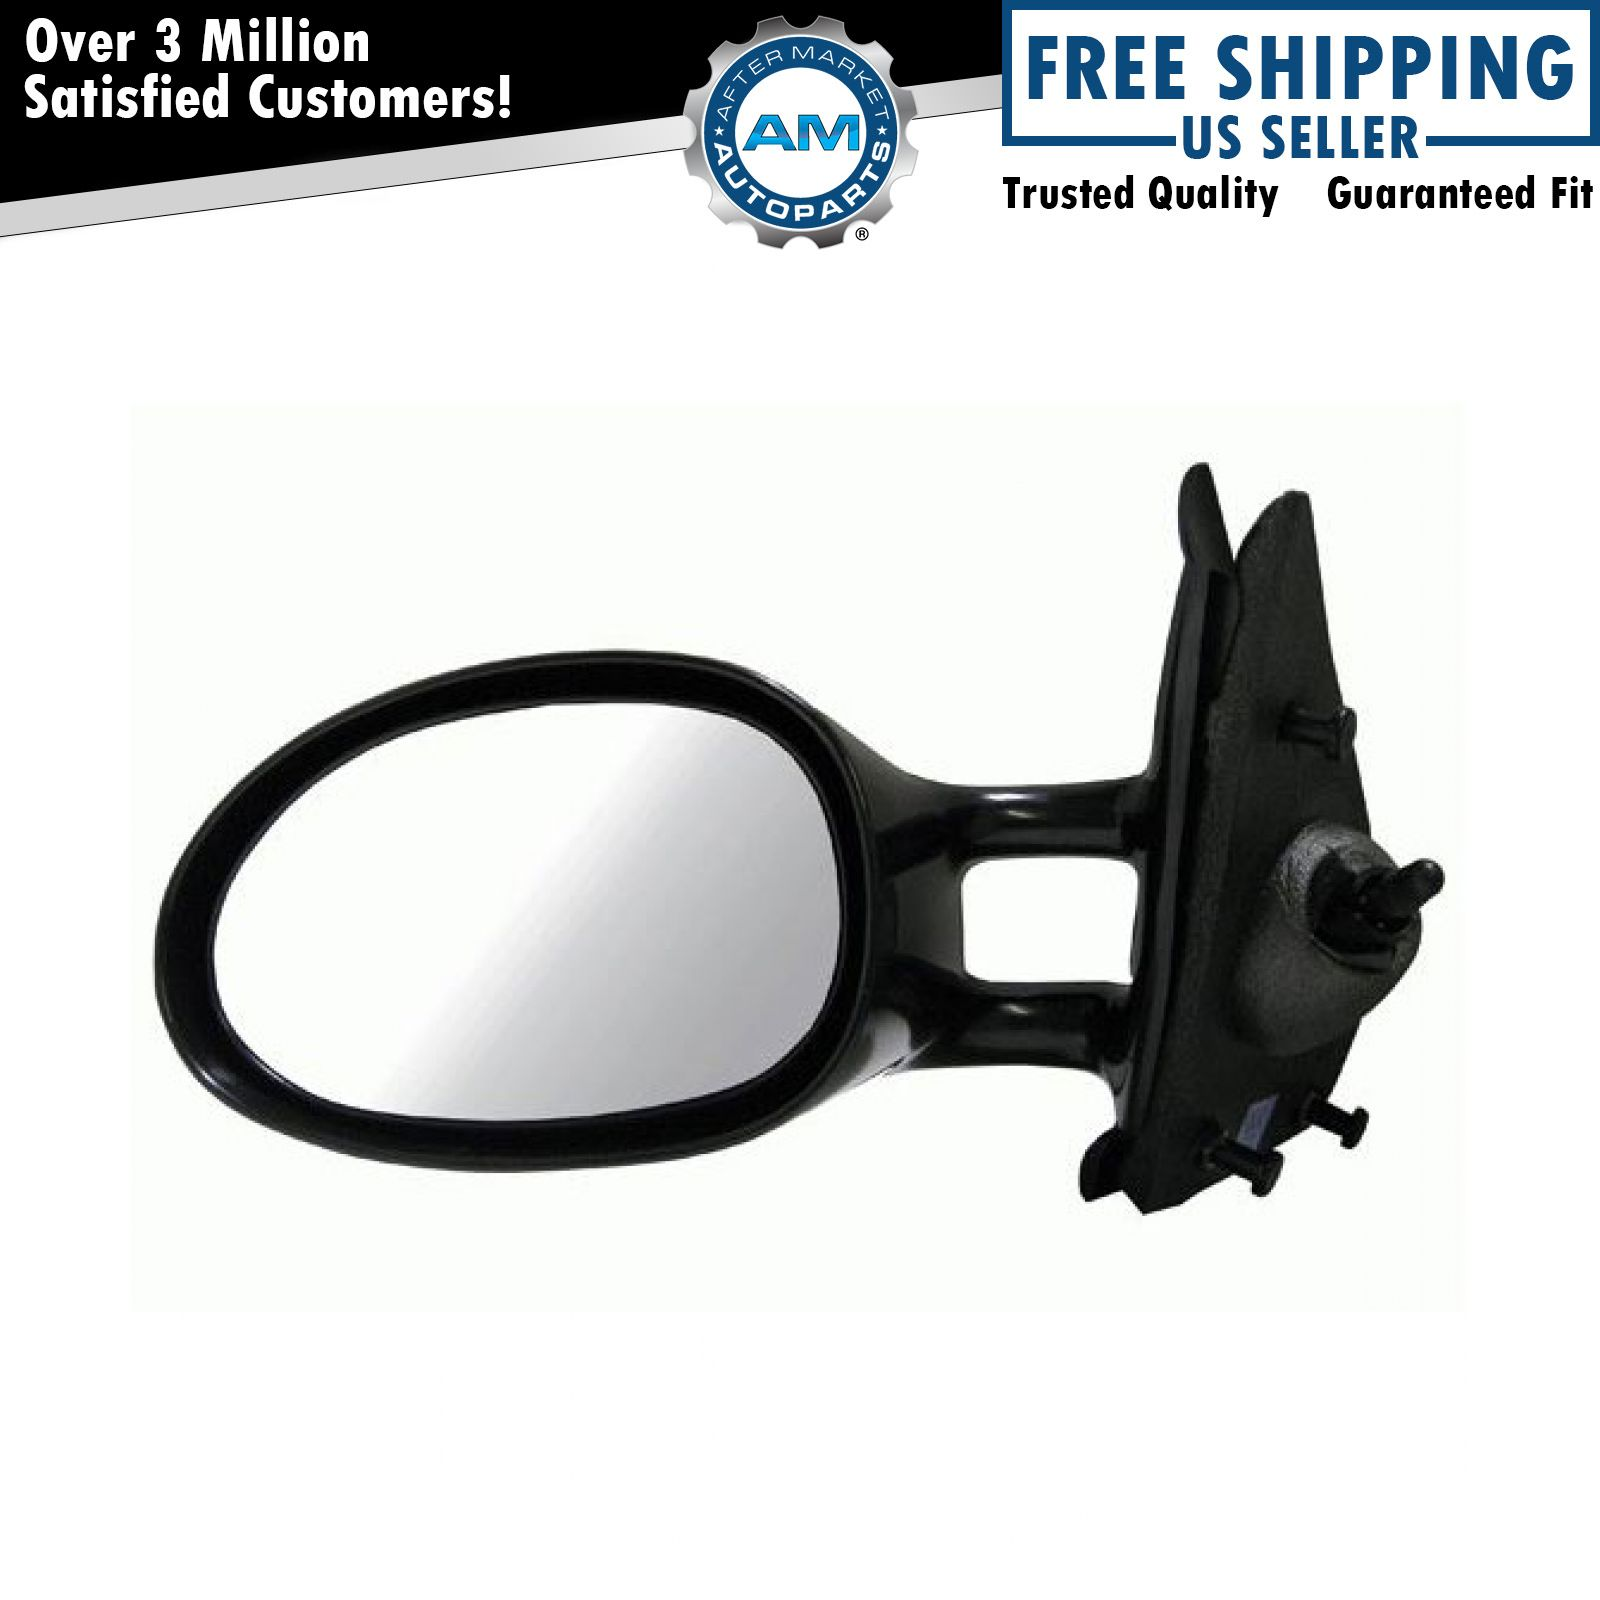 Mirror for Chrysler Cirrus Dodge Stratus Plymouth Breeze Drivers Manual Remote